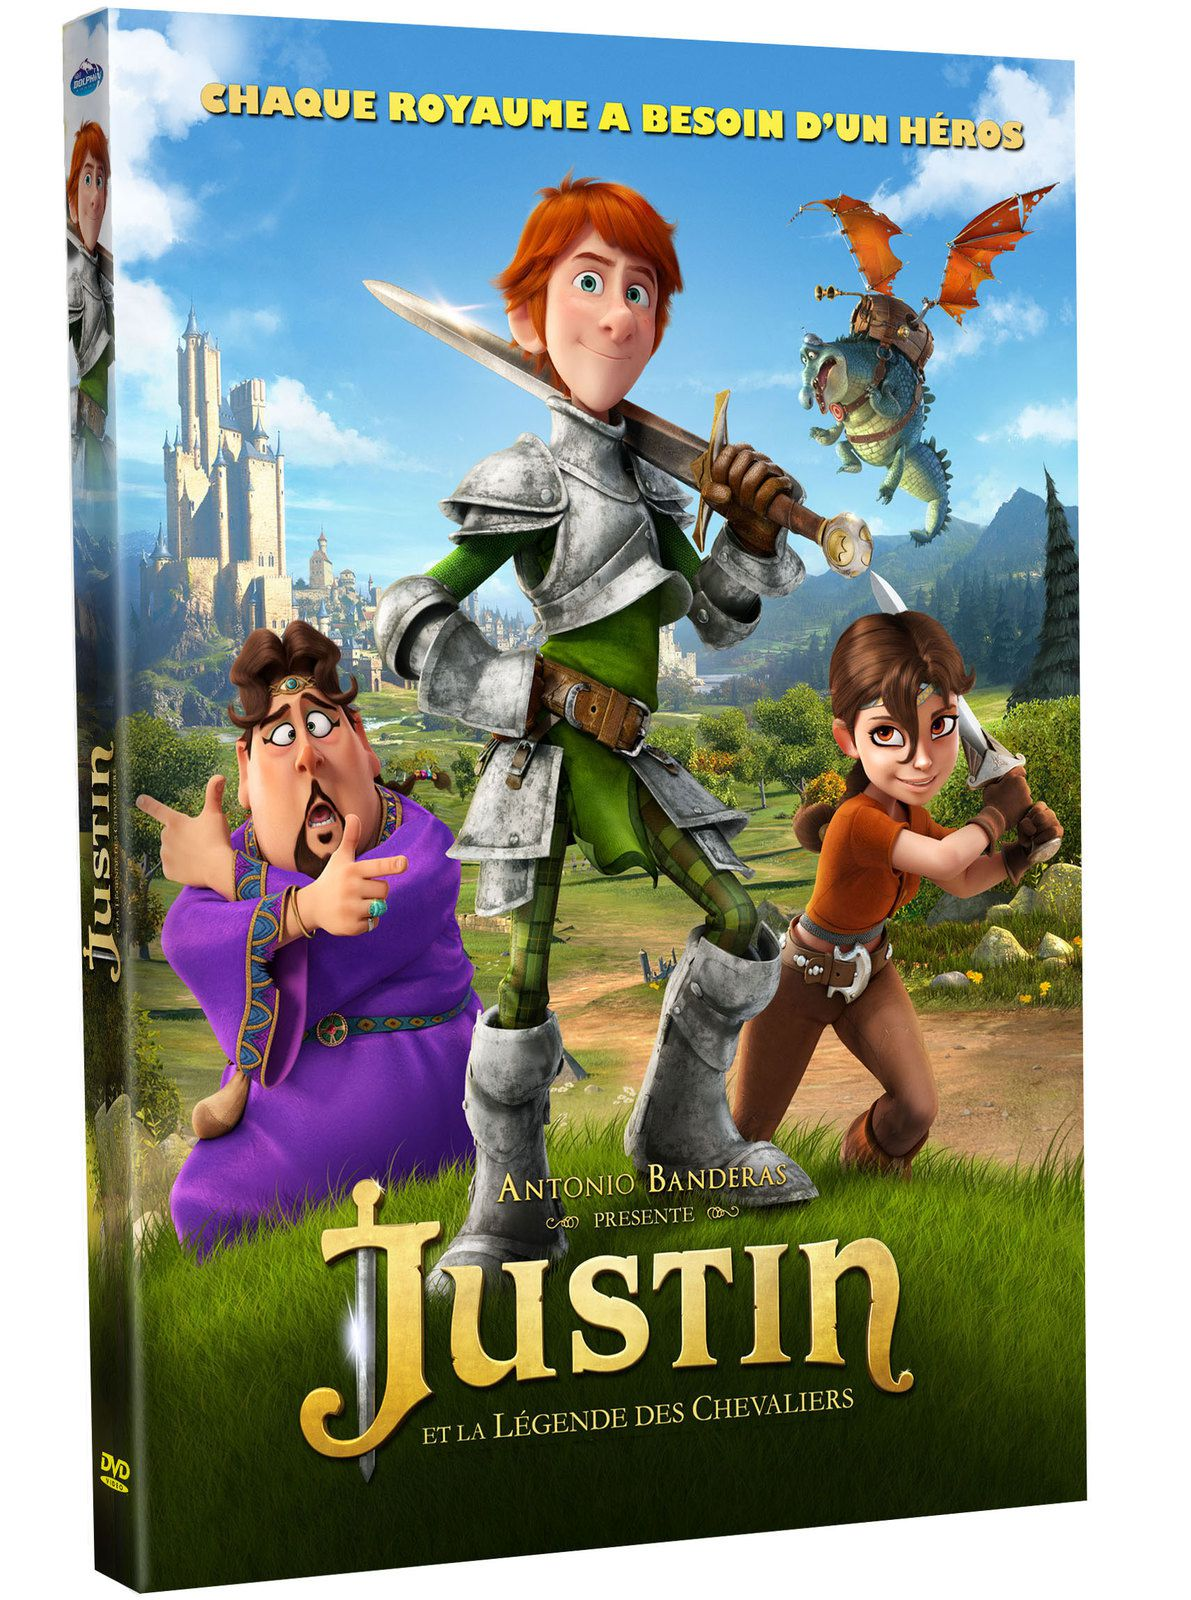 Justin et la Légende des chevaliers (BANDE ANNONCE VF) en DVD le 5 avril 2016 (Justin and the Knights of Valour)